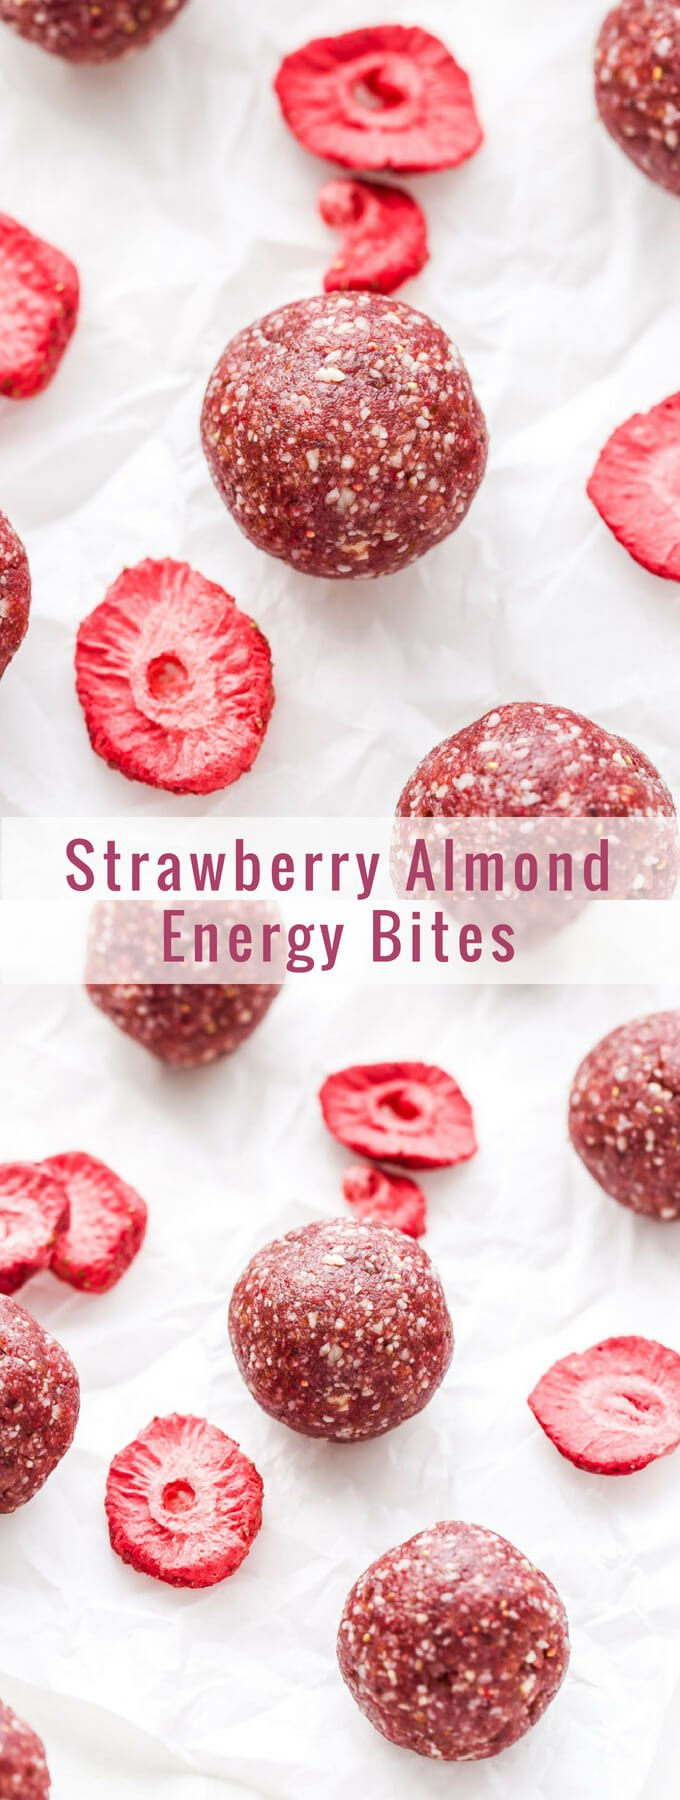 Strawberry Almond Energy Bites are easy to make and great for a pre or post workout snack. Gluten-free, paleo, vegan and full of strawberry flavor! #energybites #paleo #vegan #glutenfree #strawberry #almonds #healthysnack